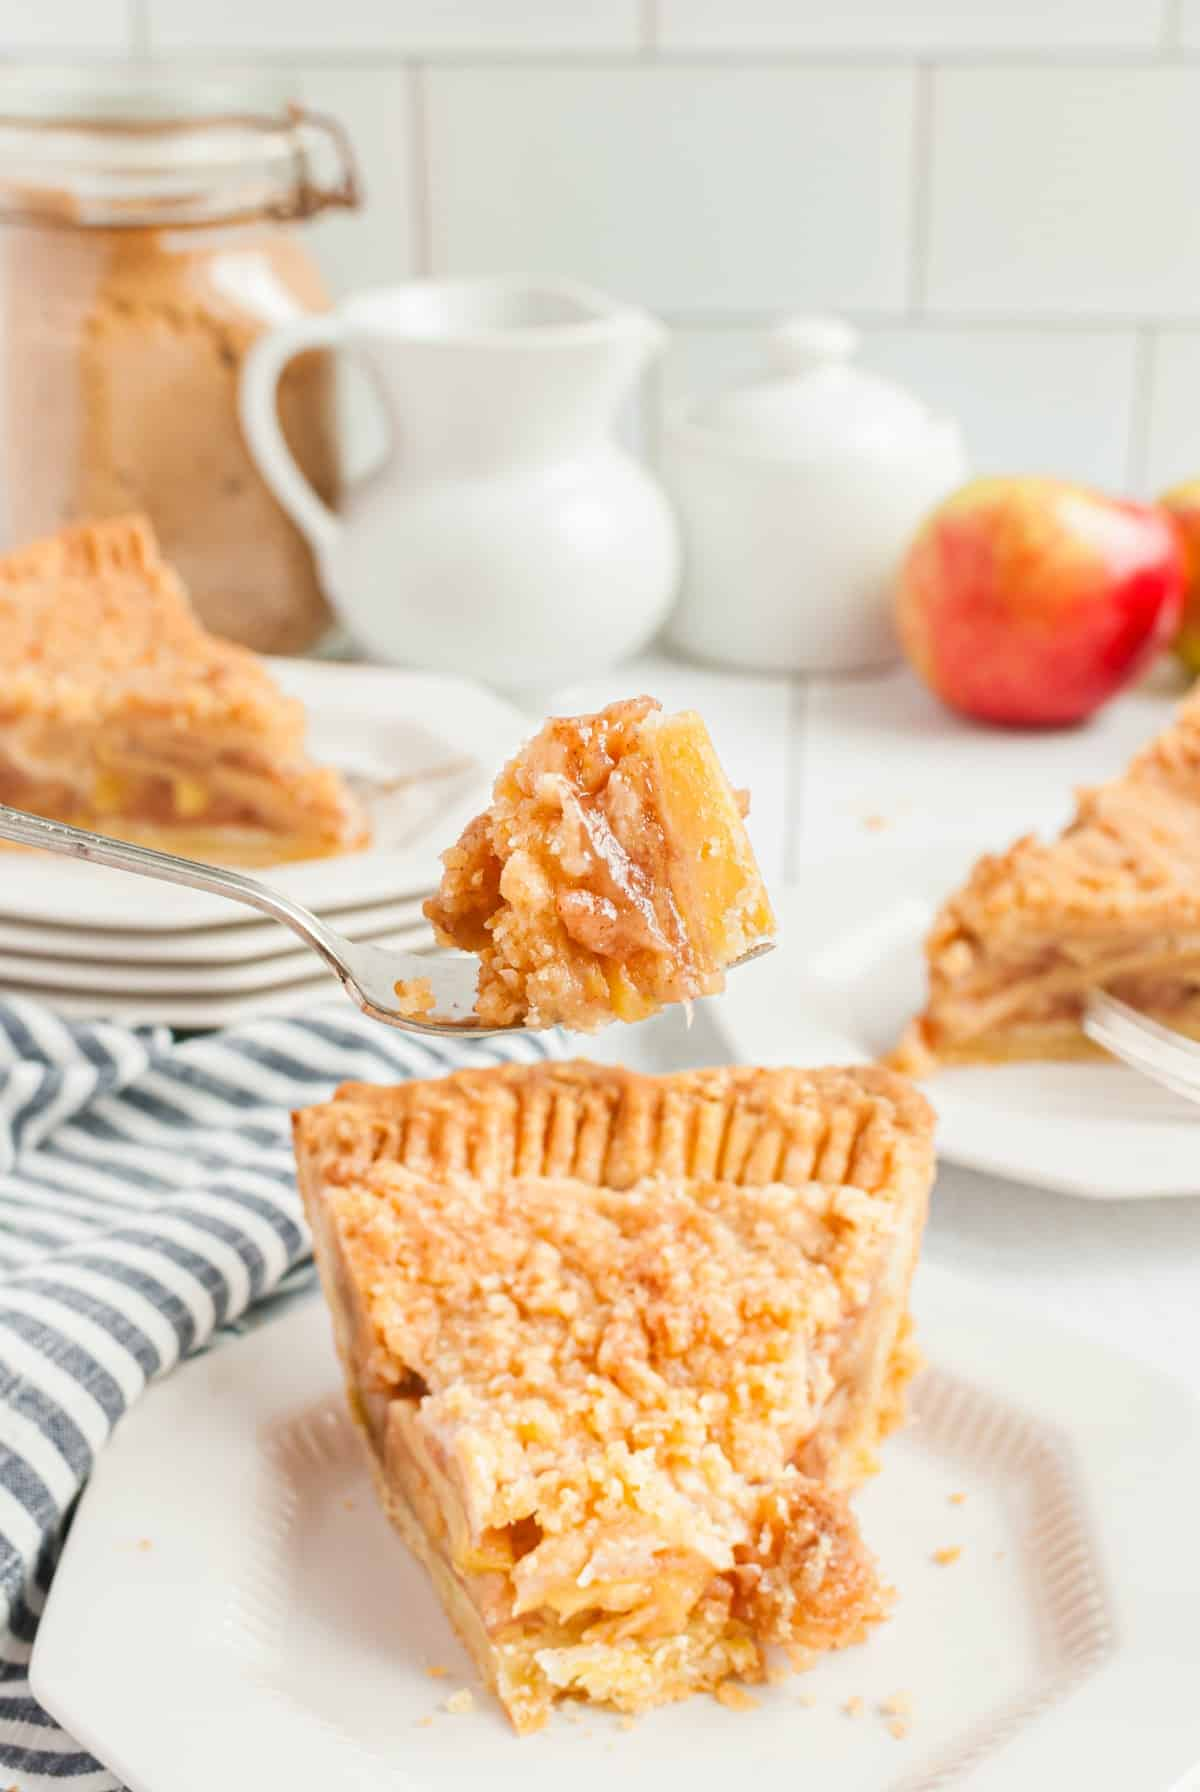 Slice of dutch apple pie on a plate with one forkful of pie being lifted.